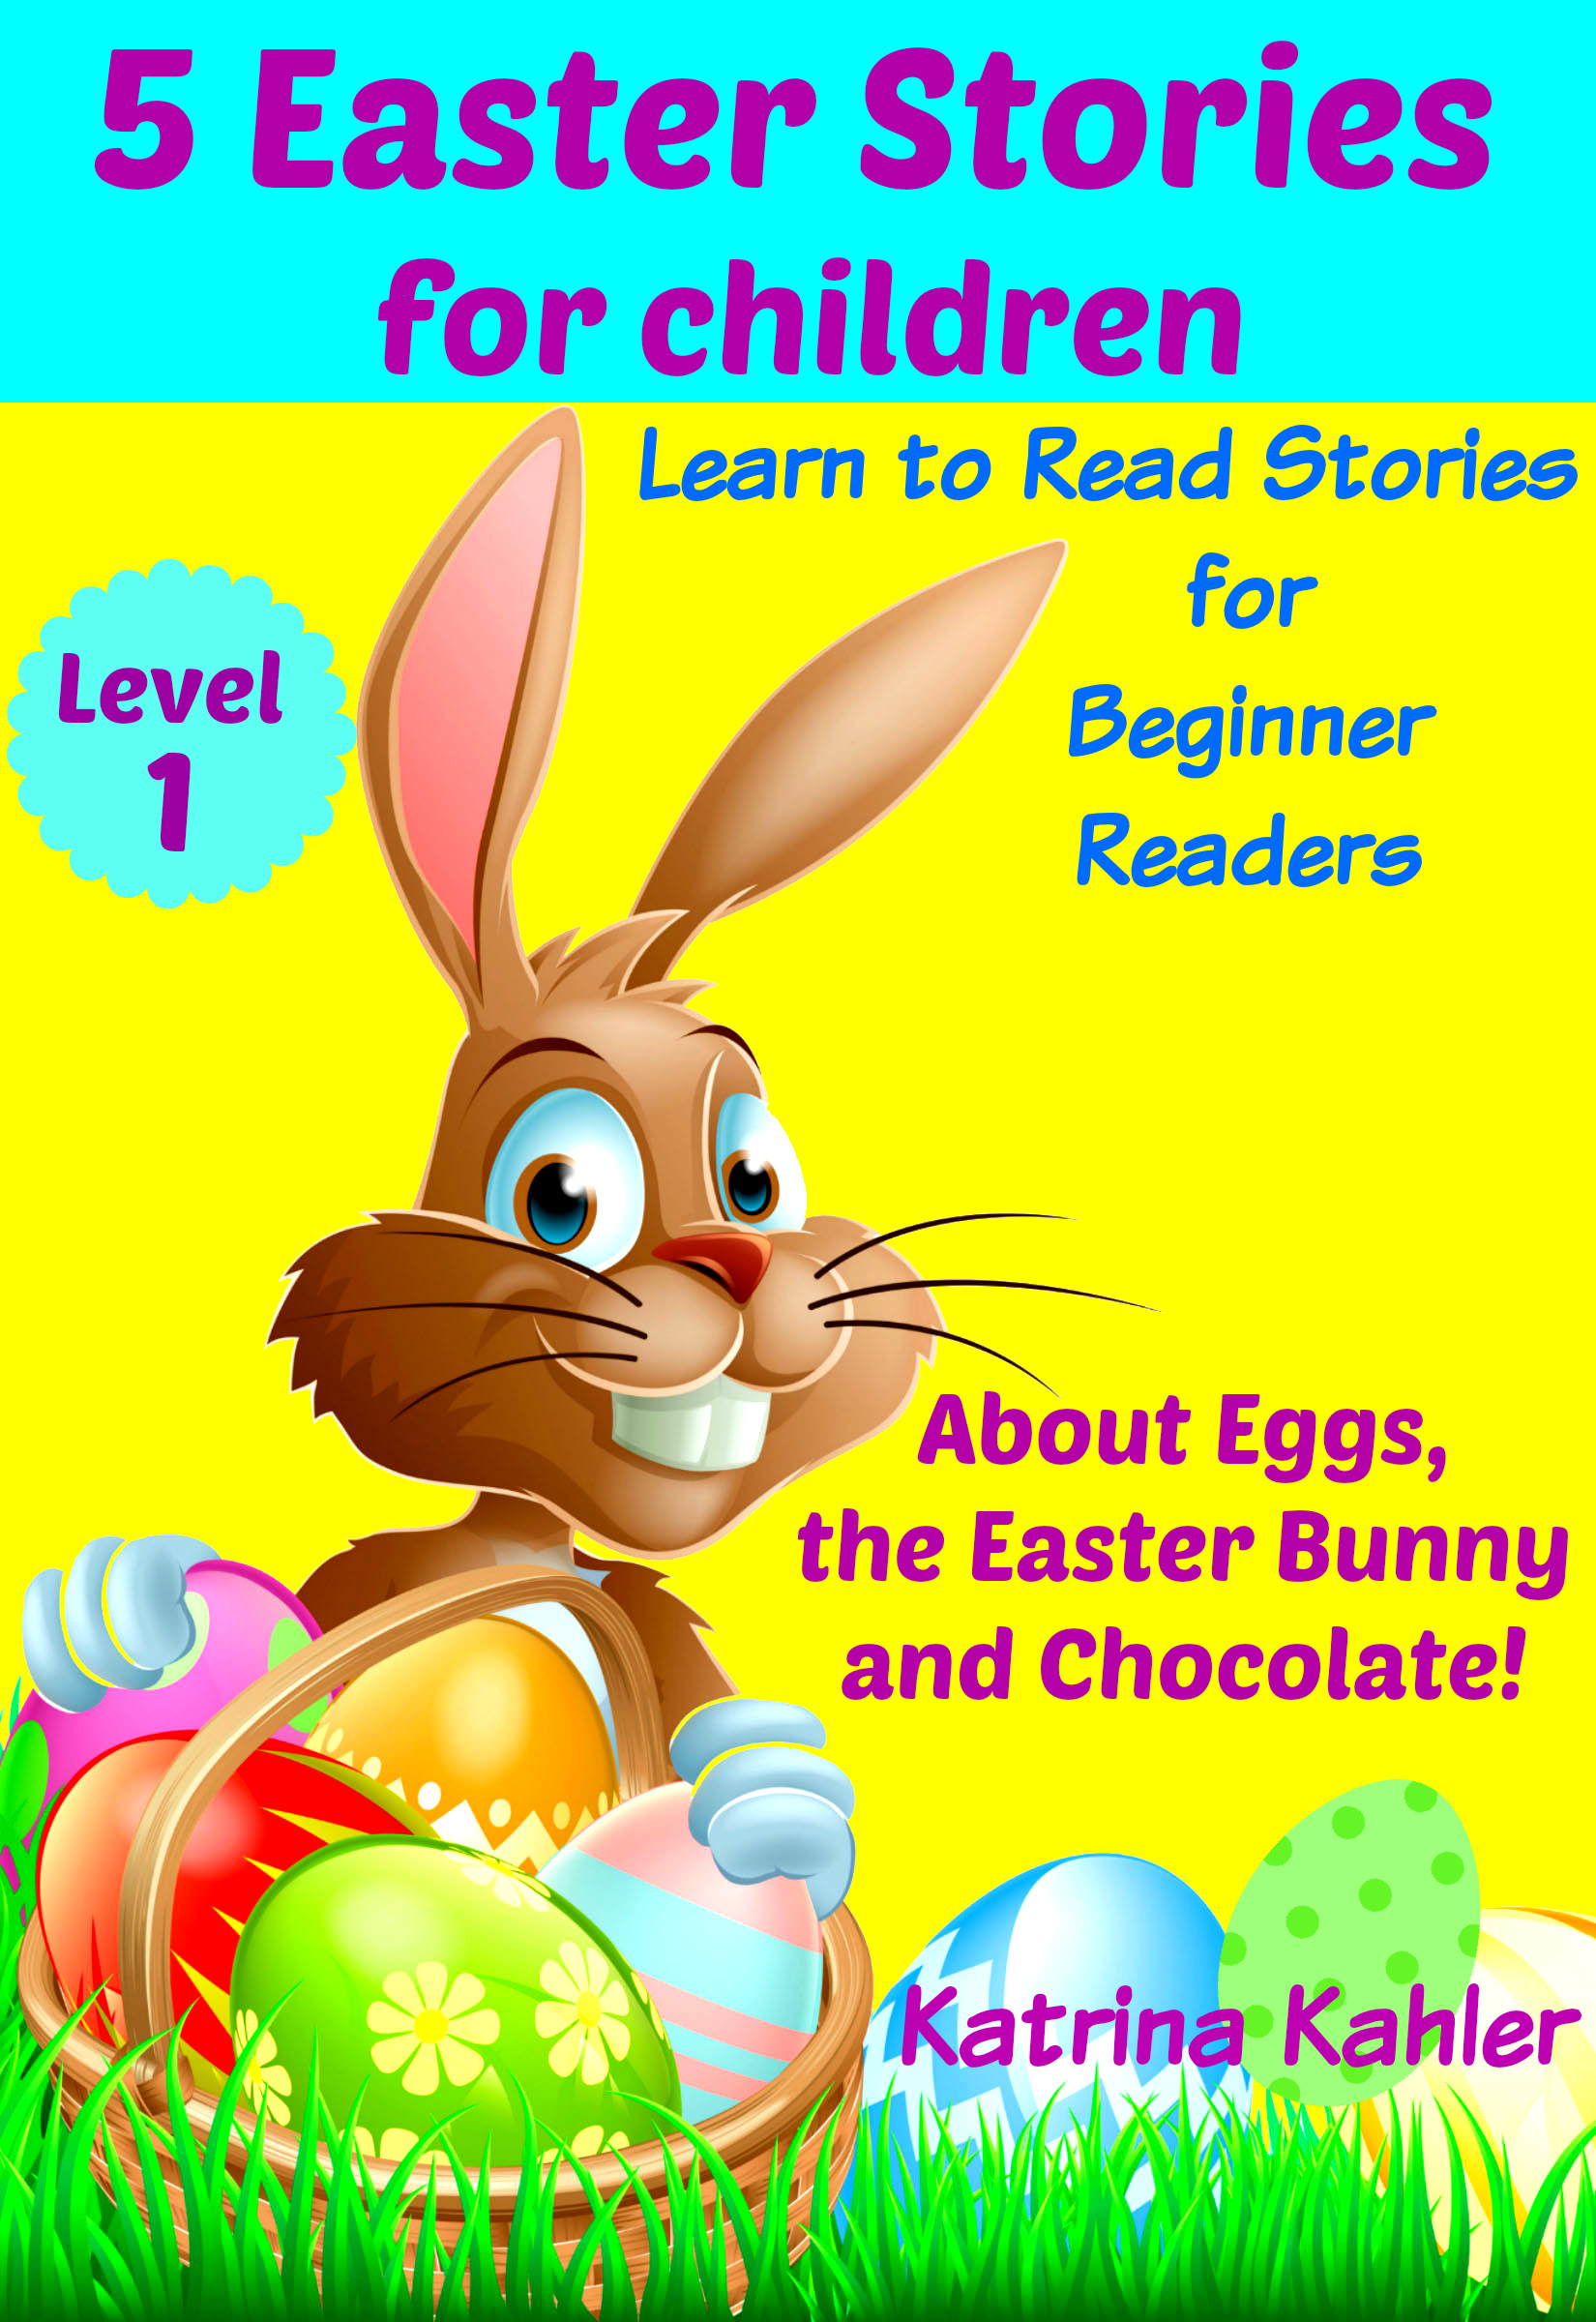 5 easter stories for children - no longer available for translation